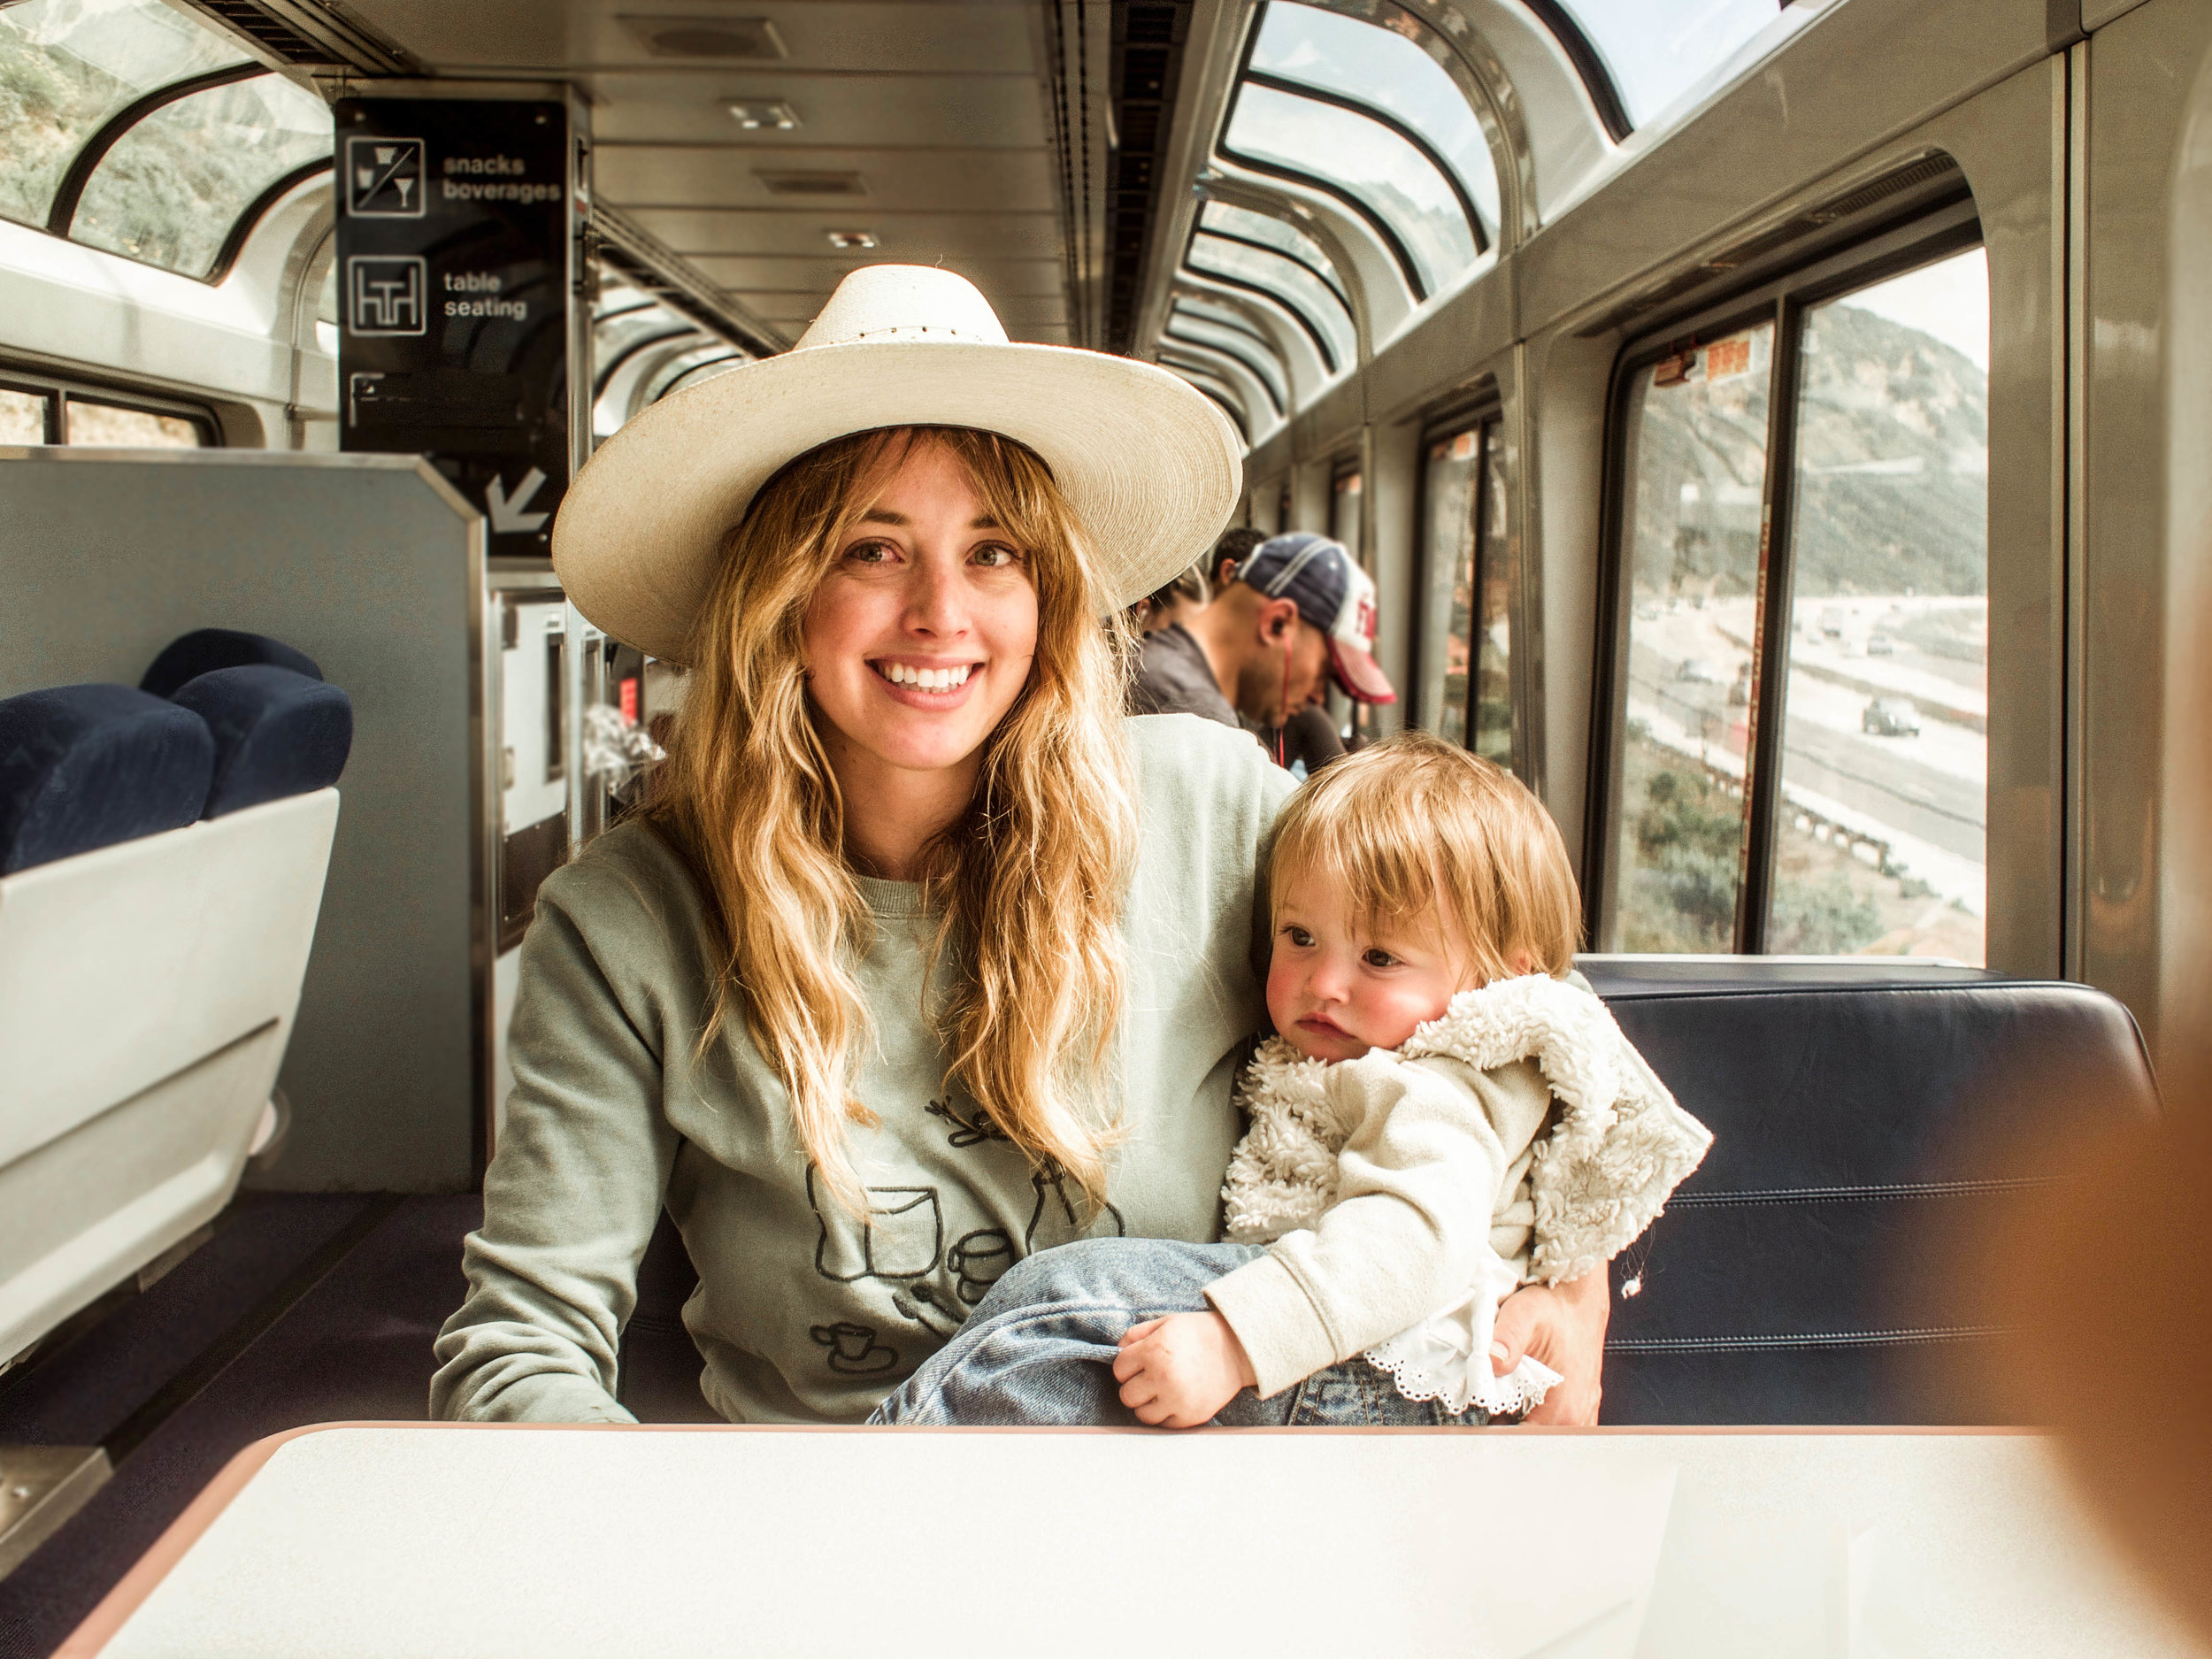 momma and babe on a train